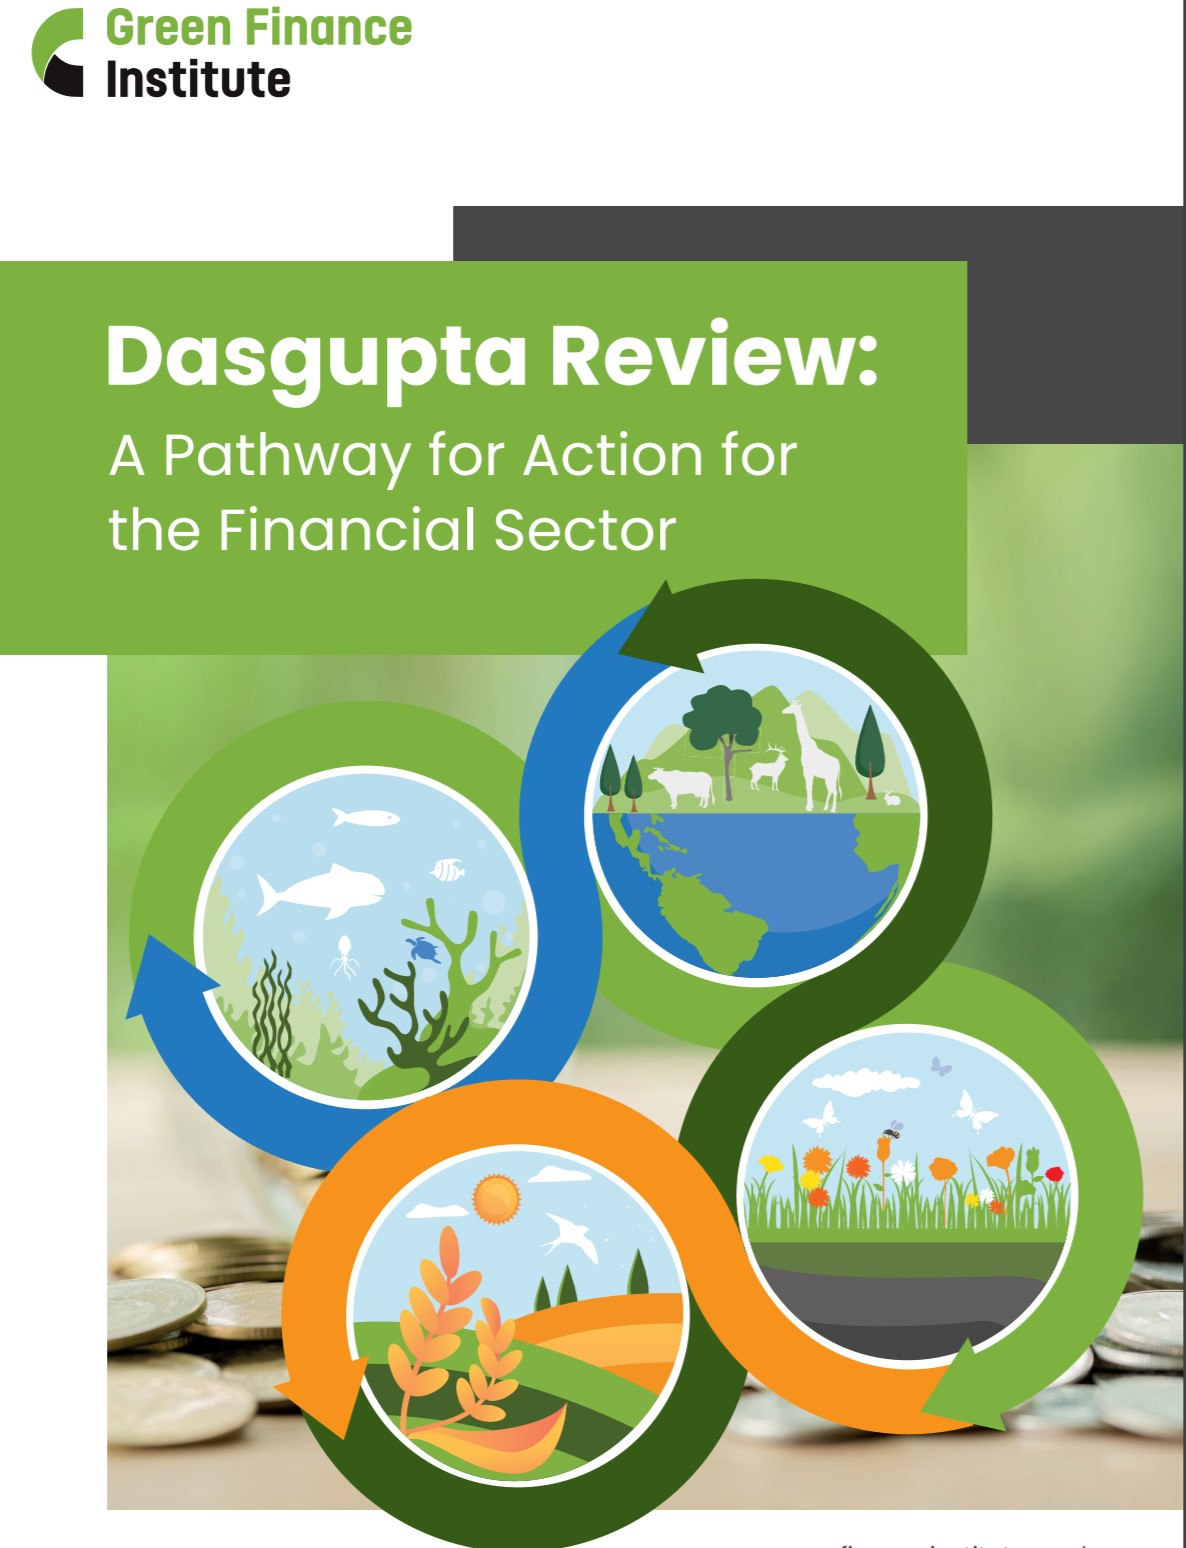 Dasgupta Review: A Pathway for Action for the Financial Sector